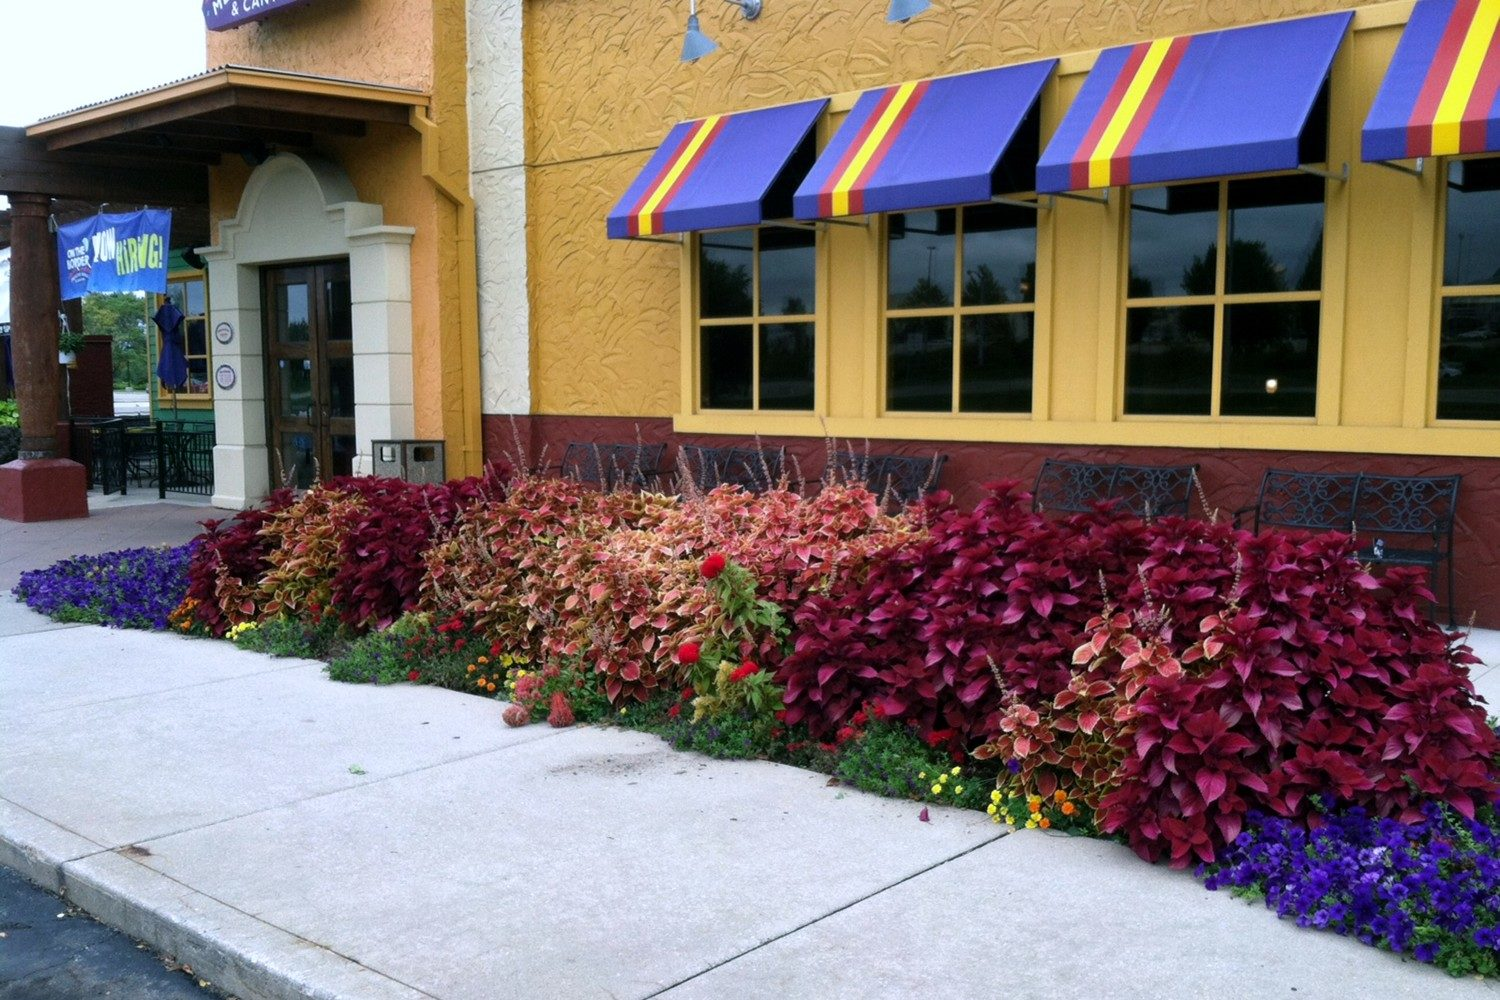 Commercial Landscape Companies West Michigan